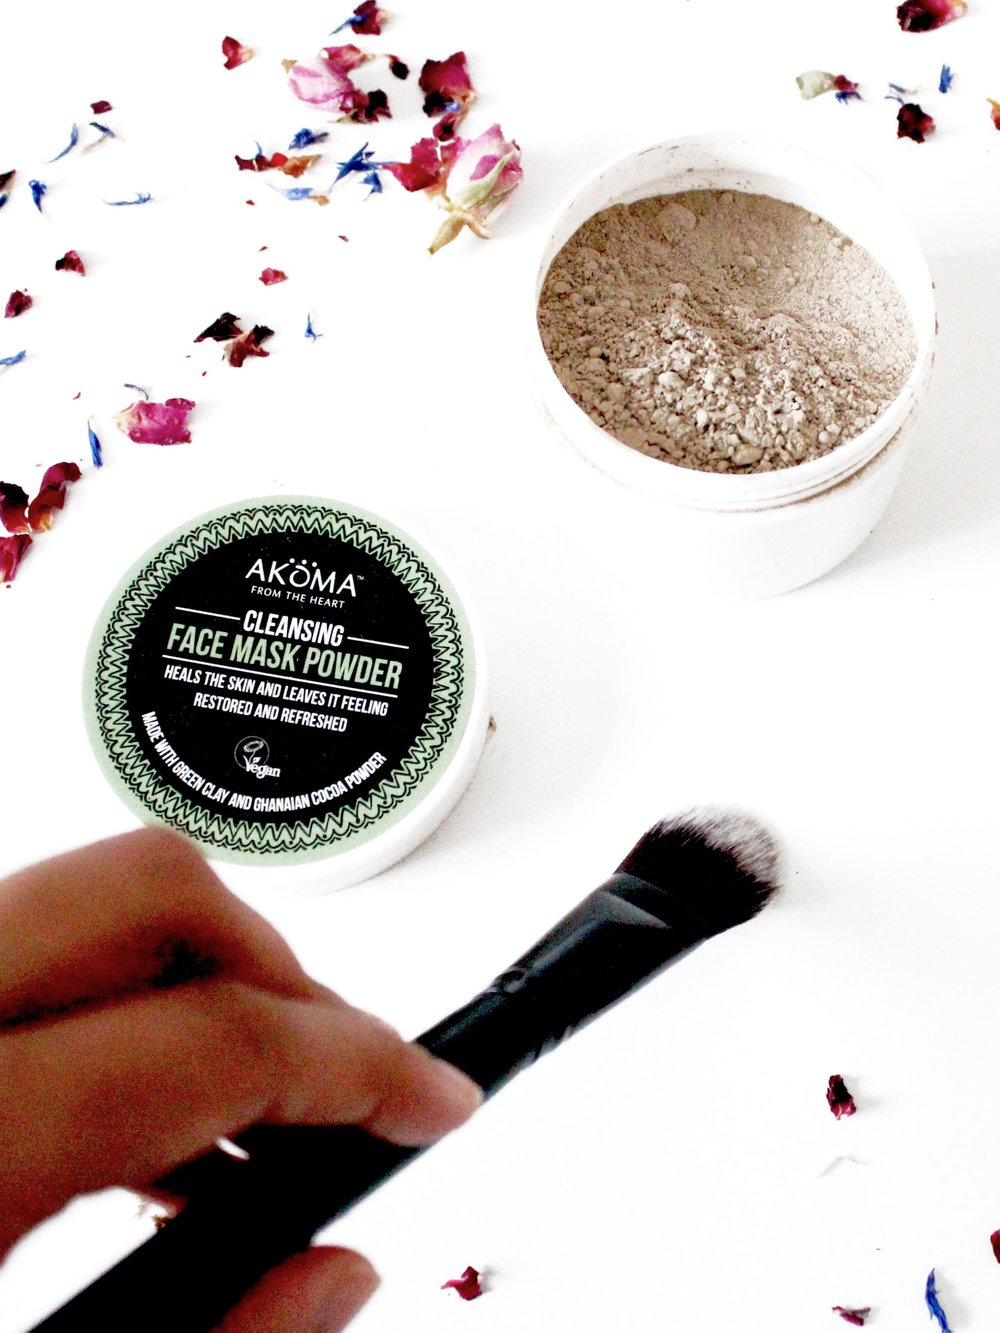 Discovering Powder Masks With Akoma